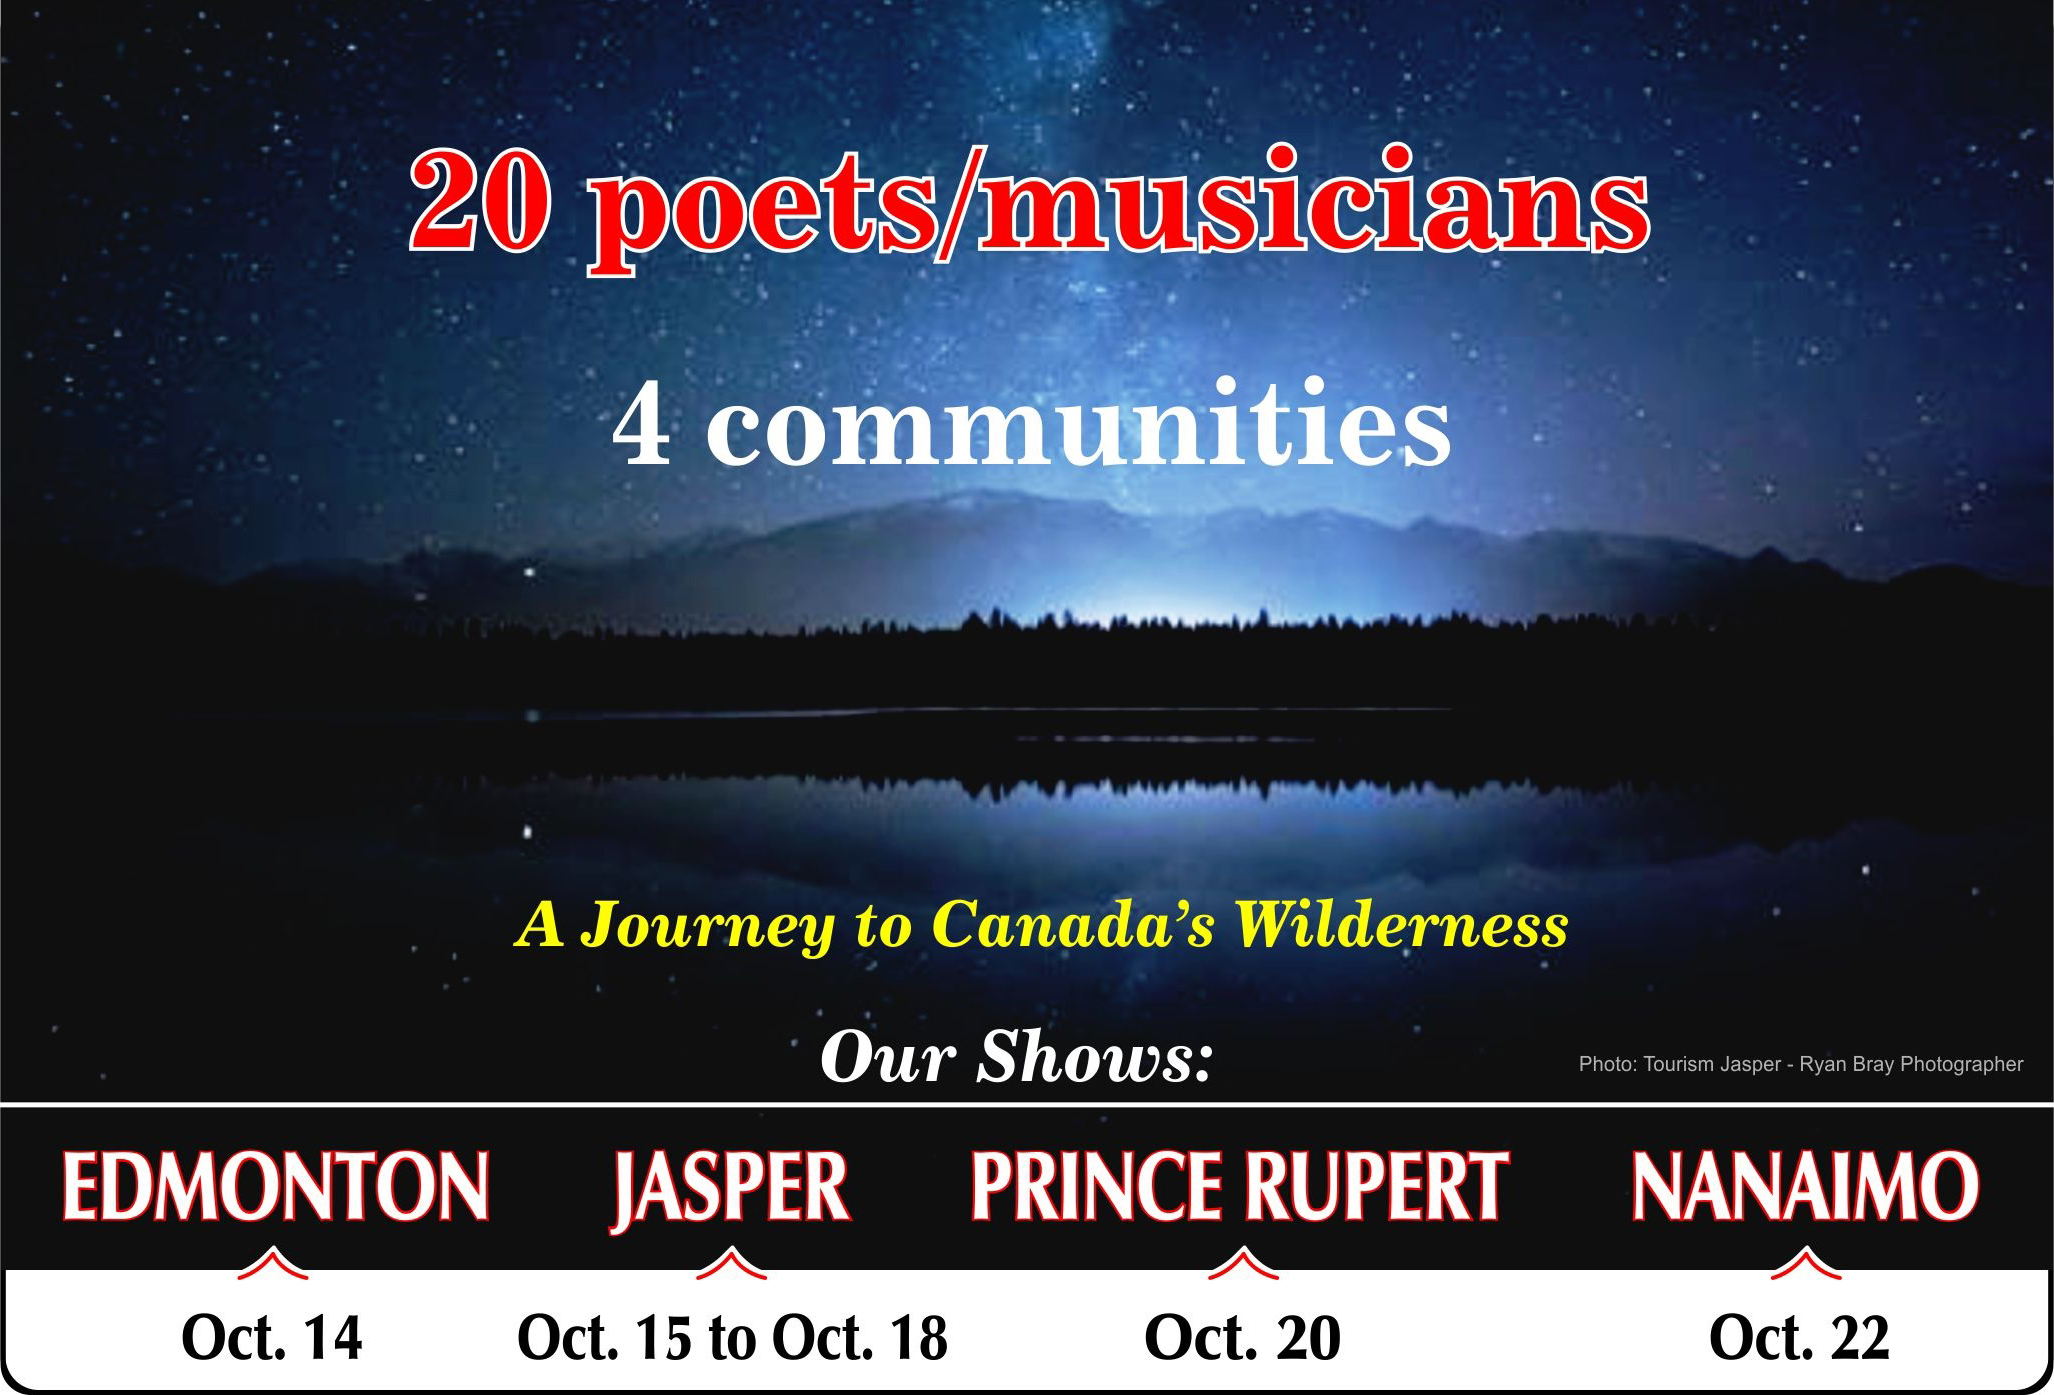 20 poets/musicians; 4 communities; A journey to Canada's wilderness. October 14-22 Edmonton-Jasper-Prince Rupert-Nanaimo